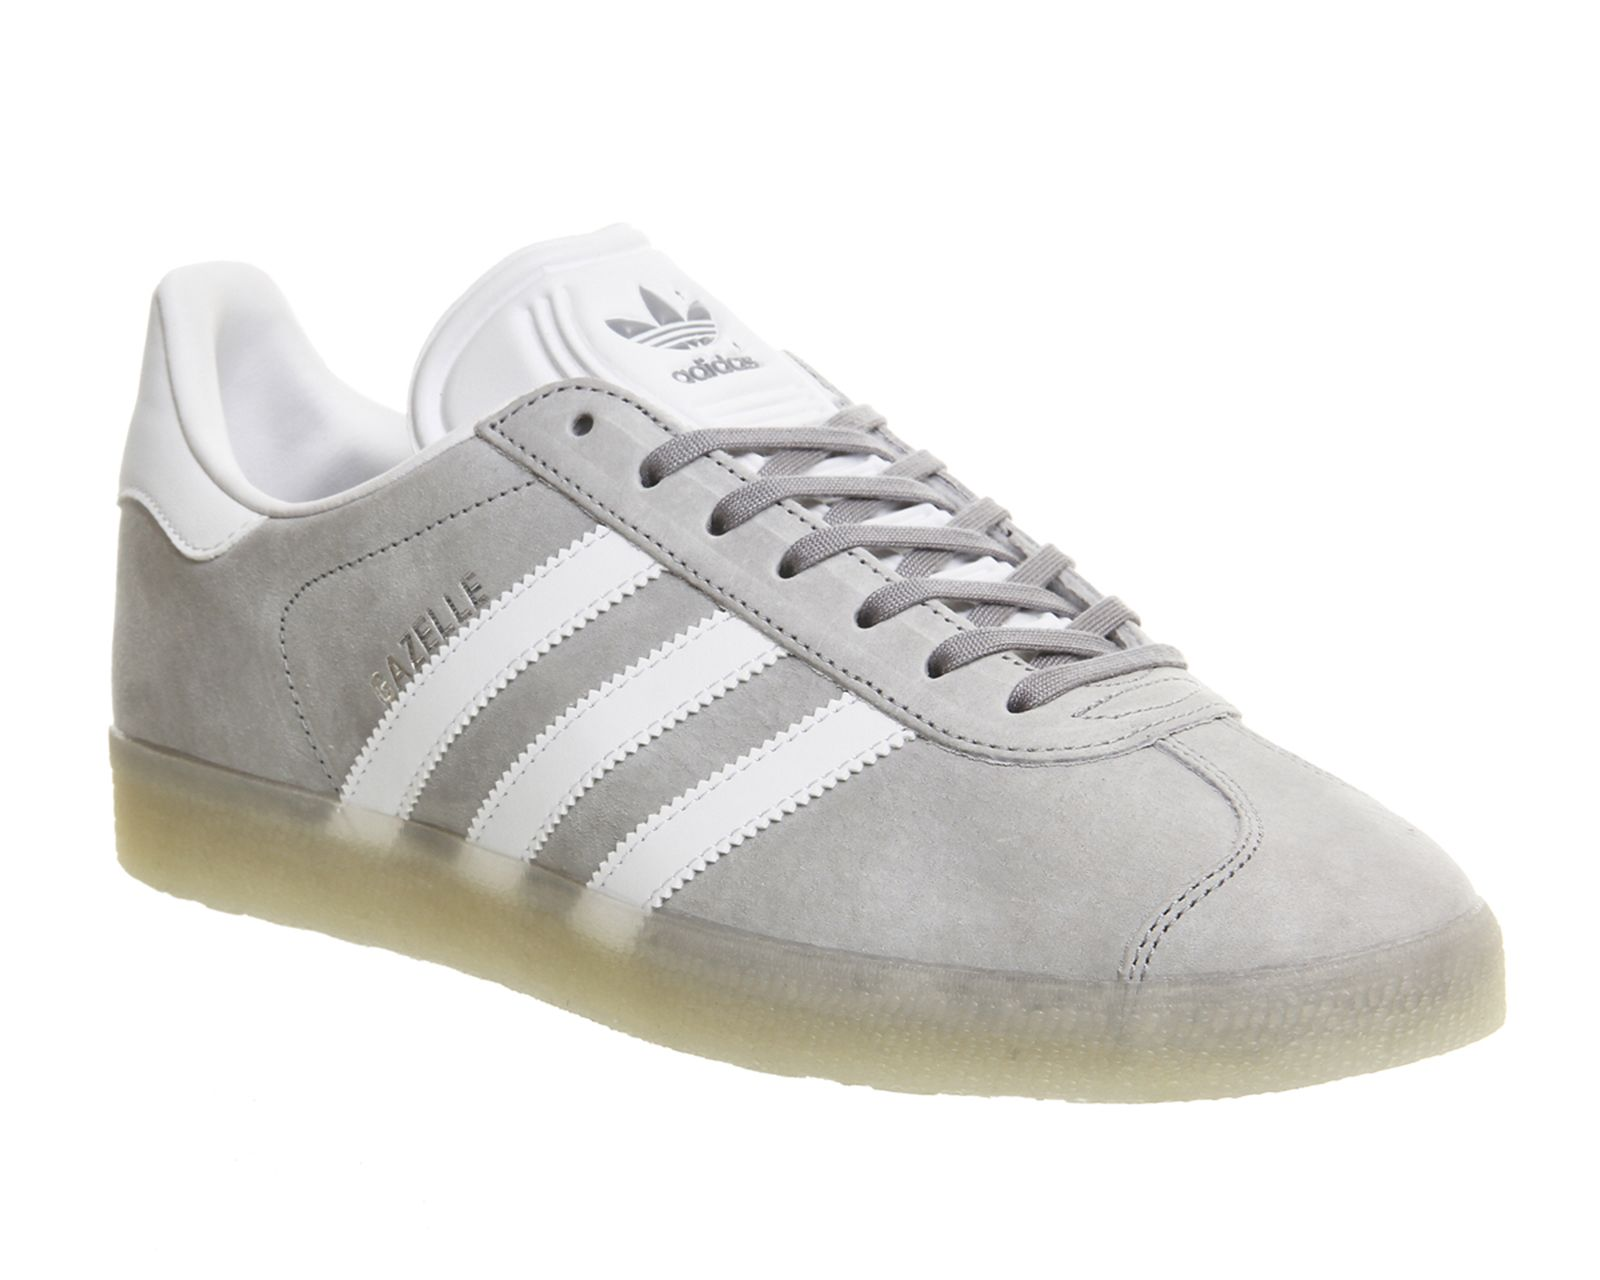 Adidas Gazelle Mid Grey White Ice  His trainers